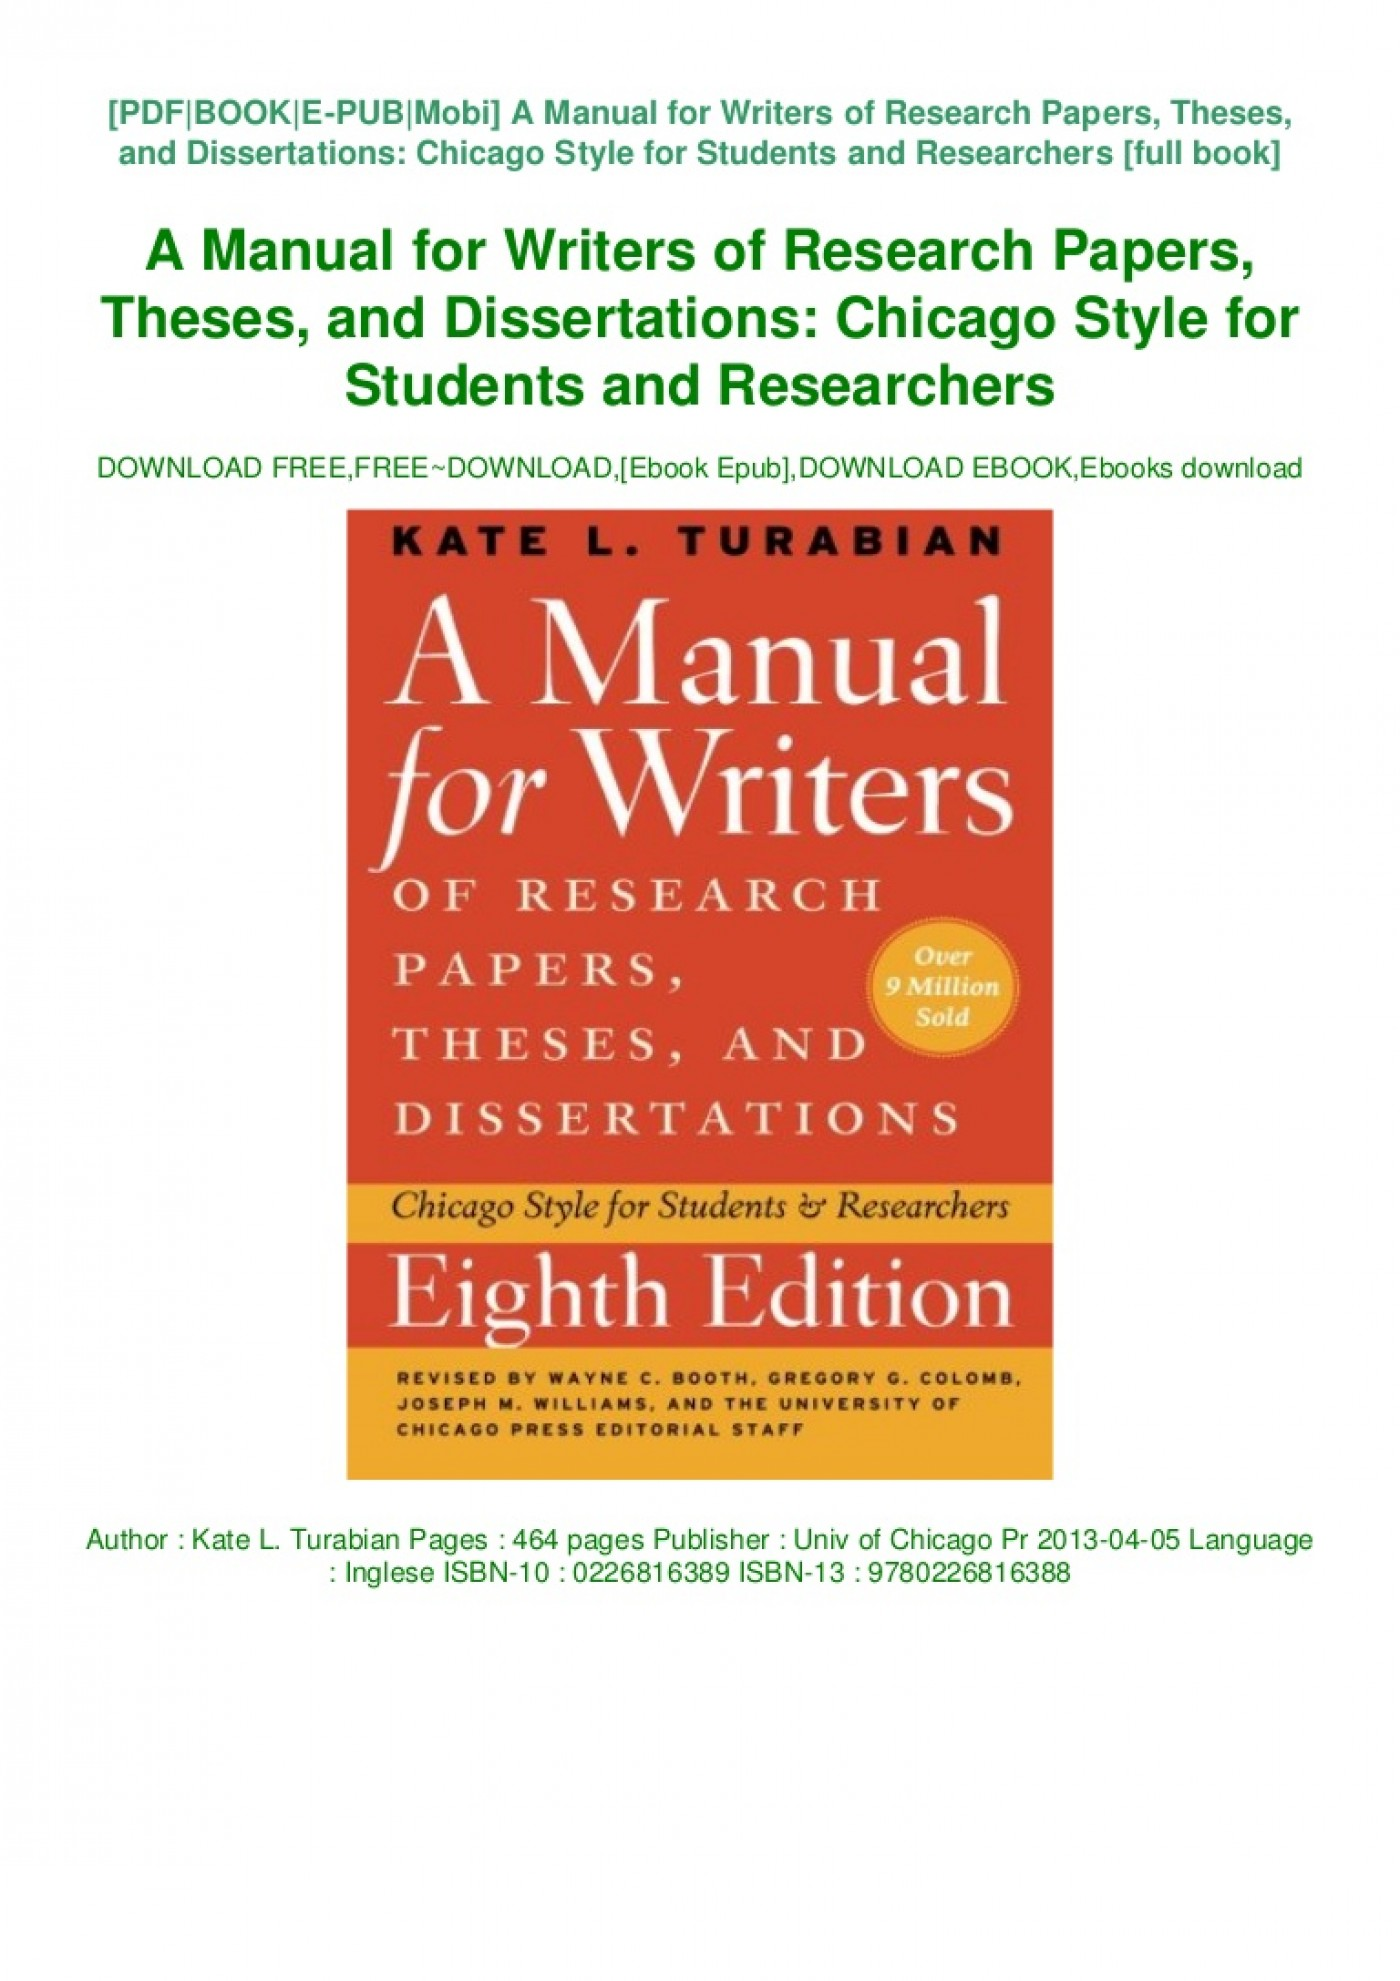 005 Book Manual For Writers Of Researchs Theses And Thumbnail Dissertations Sensational A Research Papers 8th Edition Pdf Eighth 1400